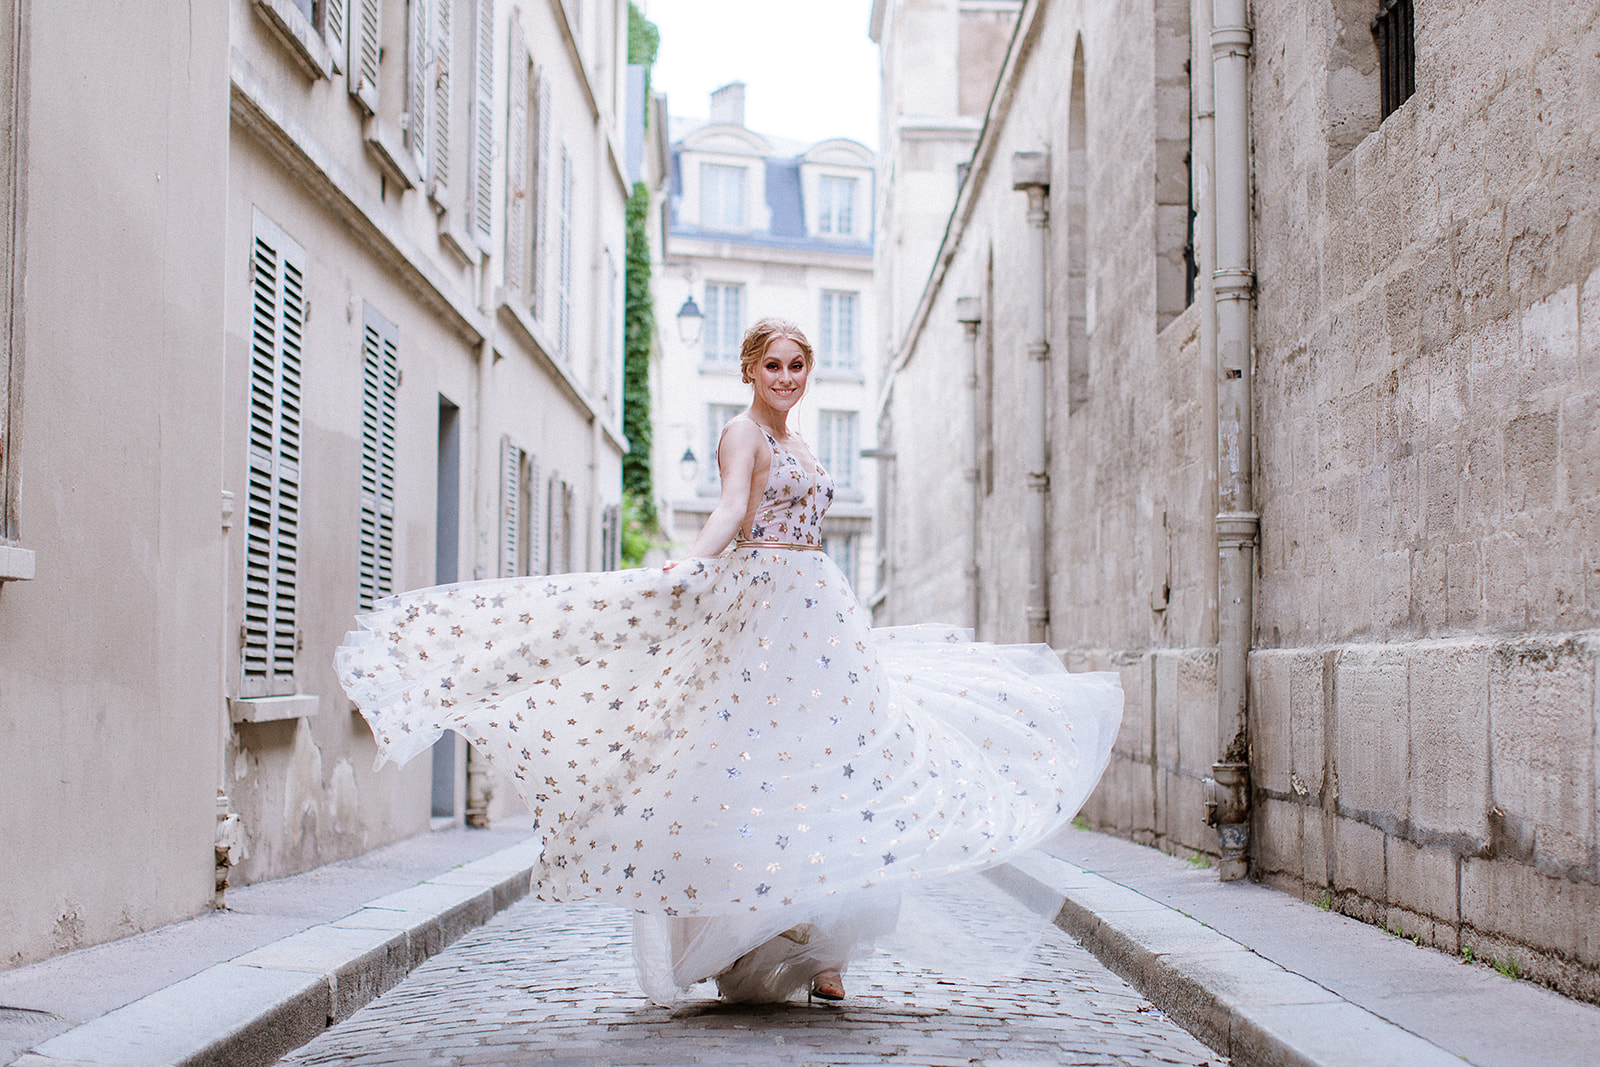 IAN HOLMES PHOTOGRAPHY - Dresses TARA - starry sequined dress - Janita Toerien / White lace and chiffon Dress - Anna GeorginaModel - Rene RoozendaalLocations - Pantheon and Plaza Anthenee HotelJewellery - Marion Rehwinkel